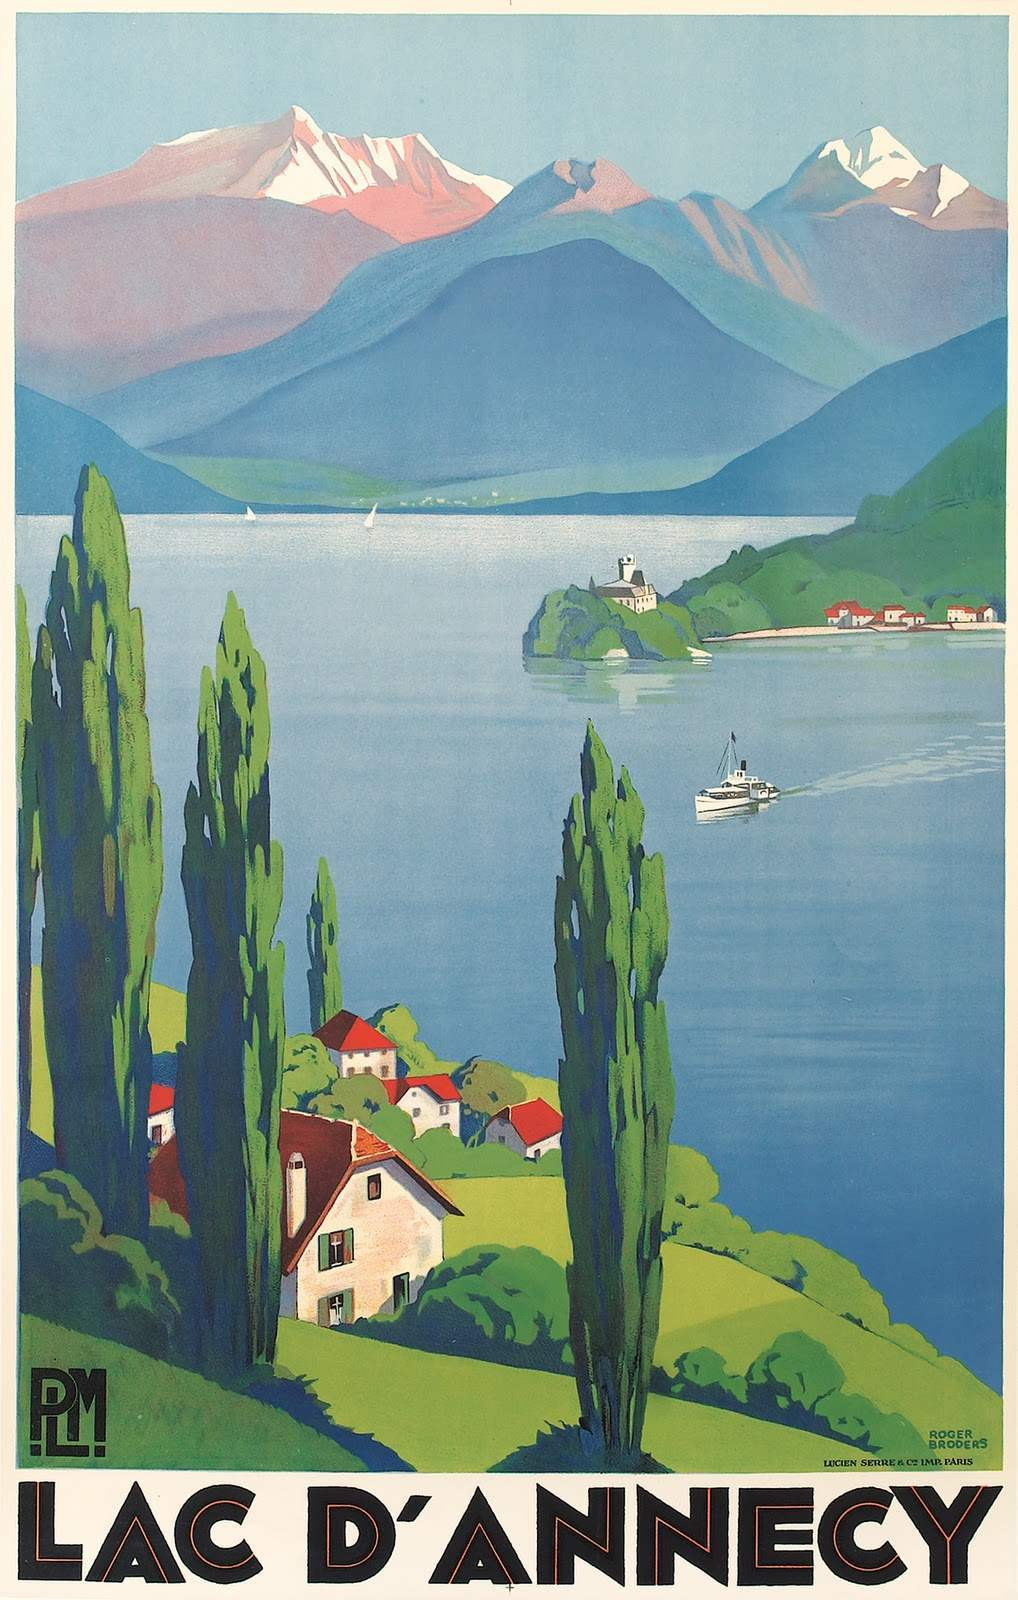 15 Beautiful French Art Deco Travel Posters By Roger